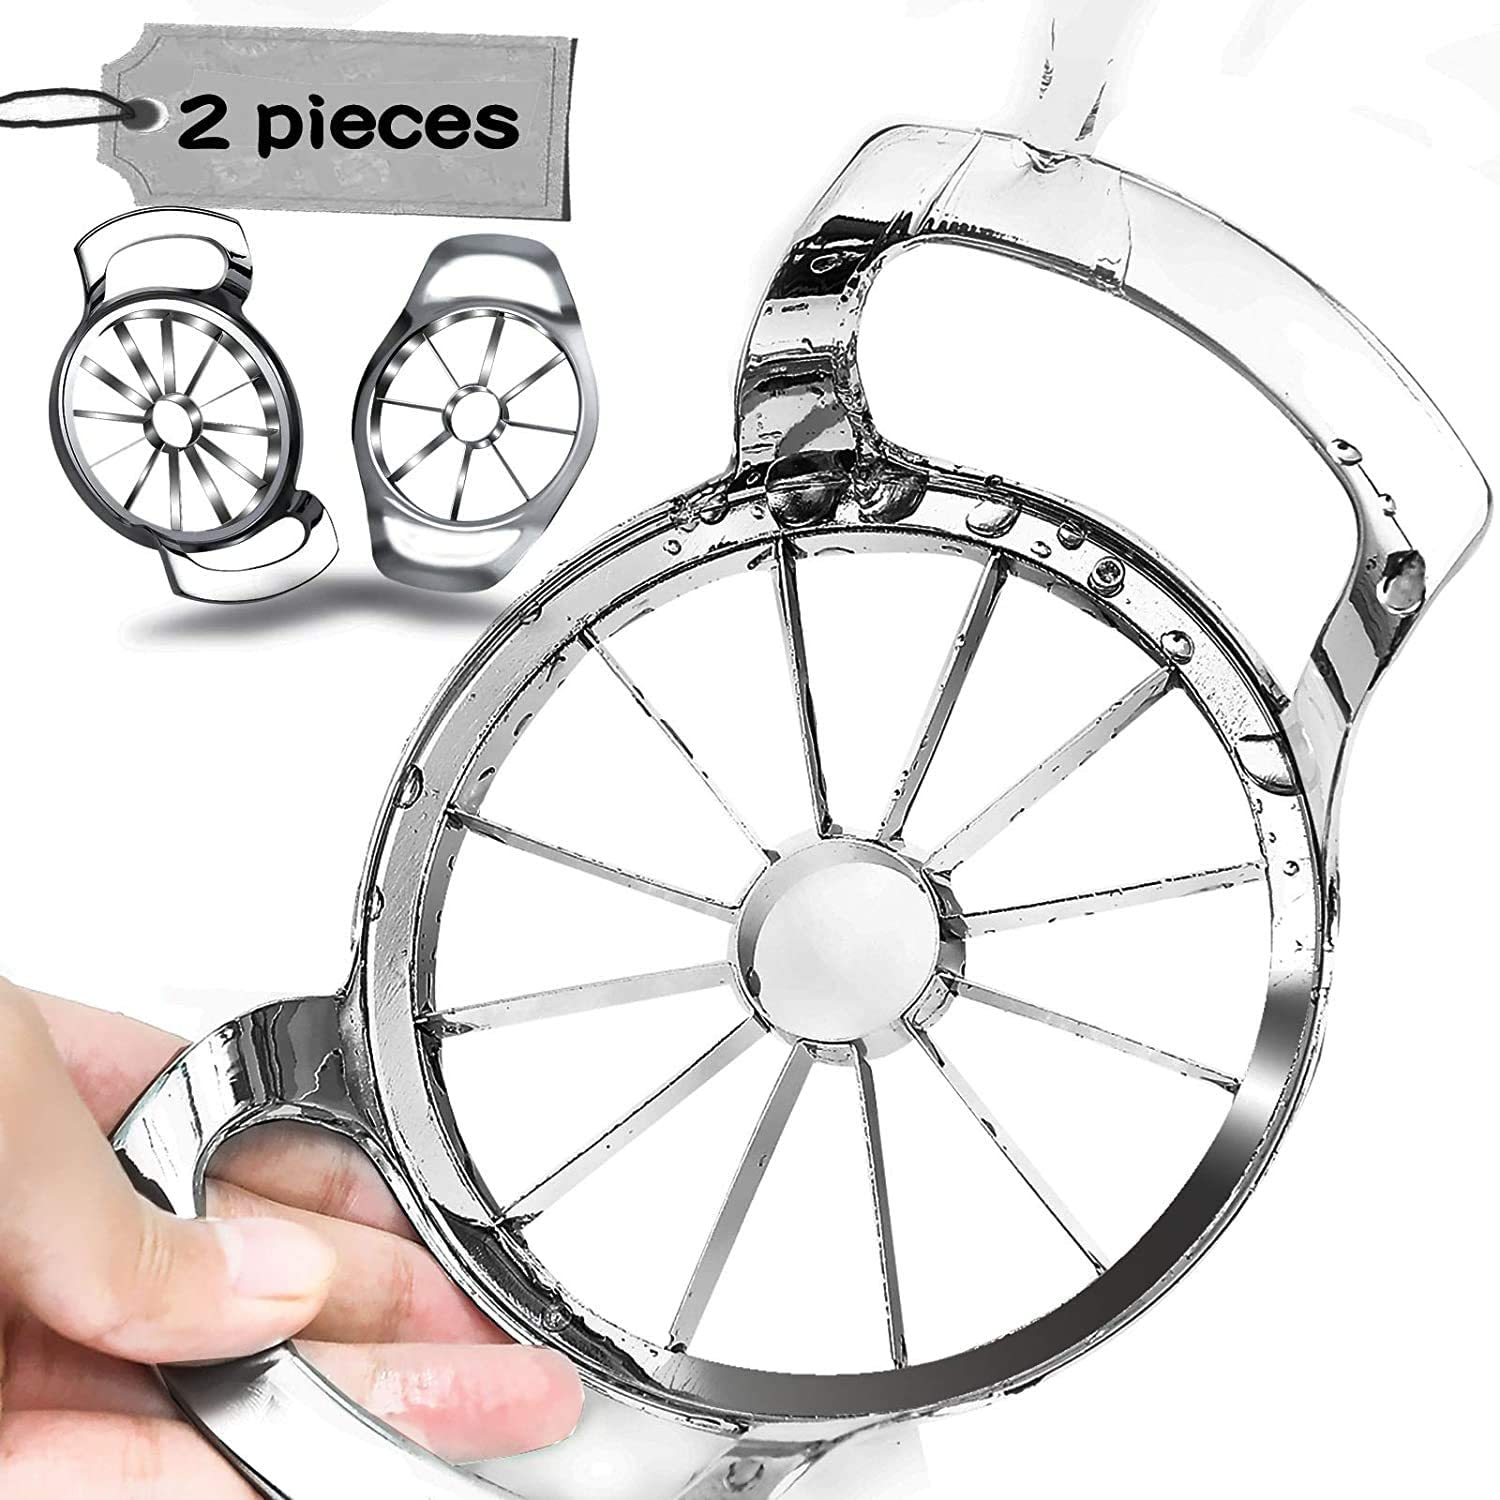 2 pieces Extra Large Apple Slicer Set, 12 Blade and 8 Blade Big Apple Slicer Corer Cutter Heavy Duty , Fruit Peeler Stainless Steel Kitchen Gadgets Cooking Tools 8 Slices and 12 Slices Set